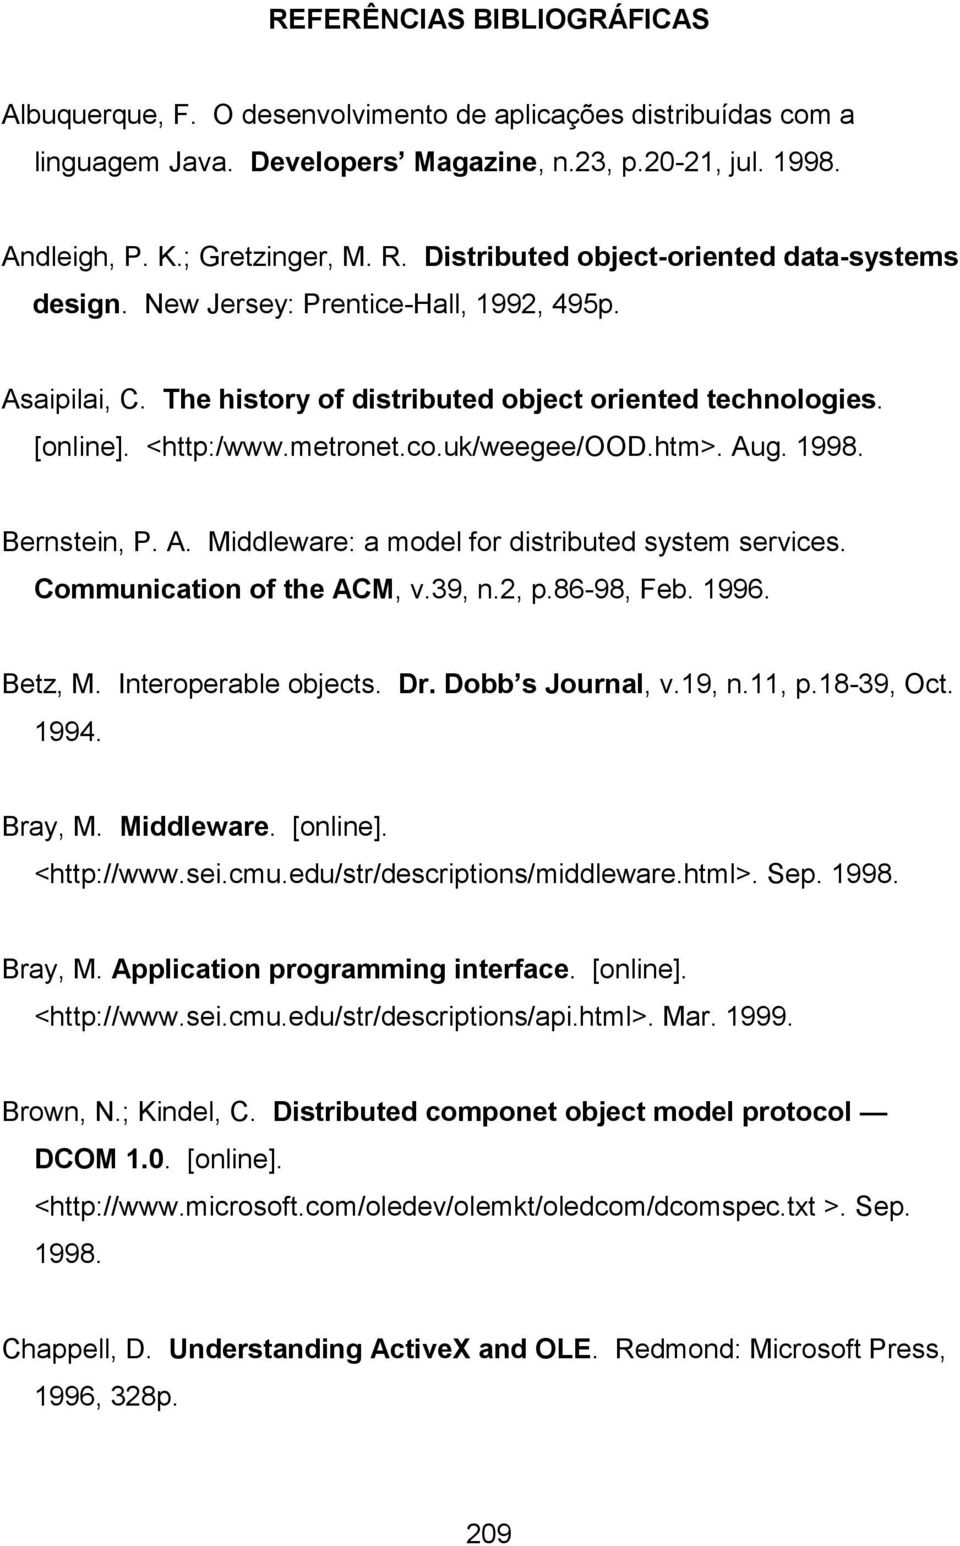 uk/weegee/ood.htm>. Aug. 1998. Bernstein, P. A. Middleware: a model for distributed system services. Communication of the ACM, v.39, n.2, p.86-98, Feb. 1996. Betz, M. Interoperable objects. Dr.